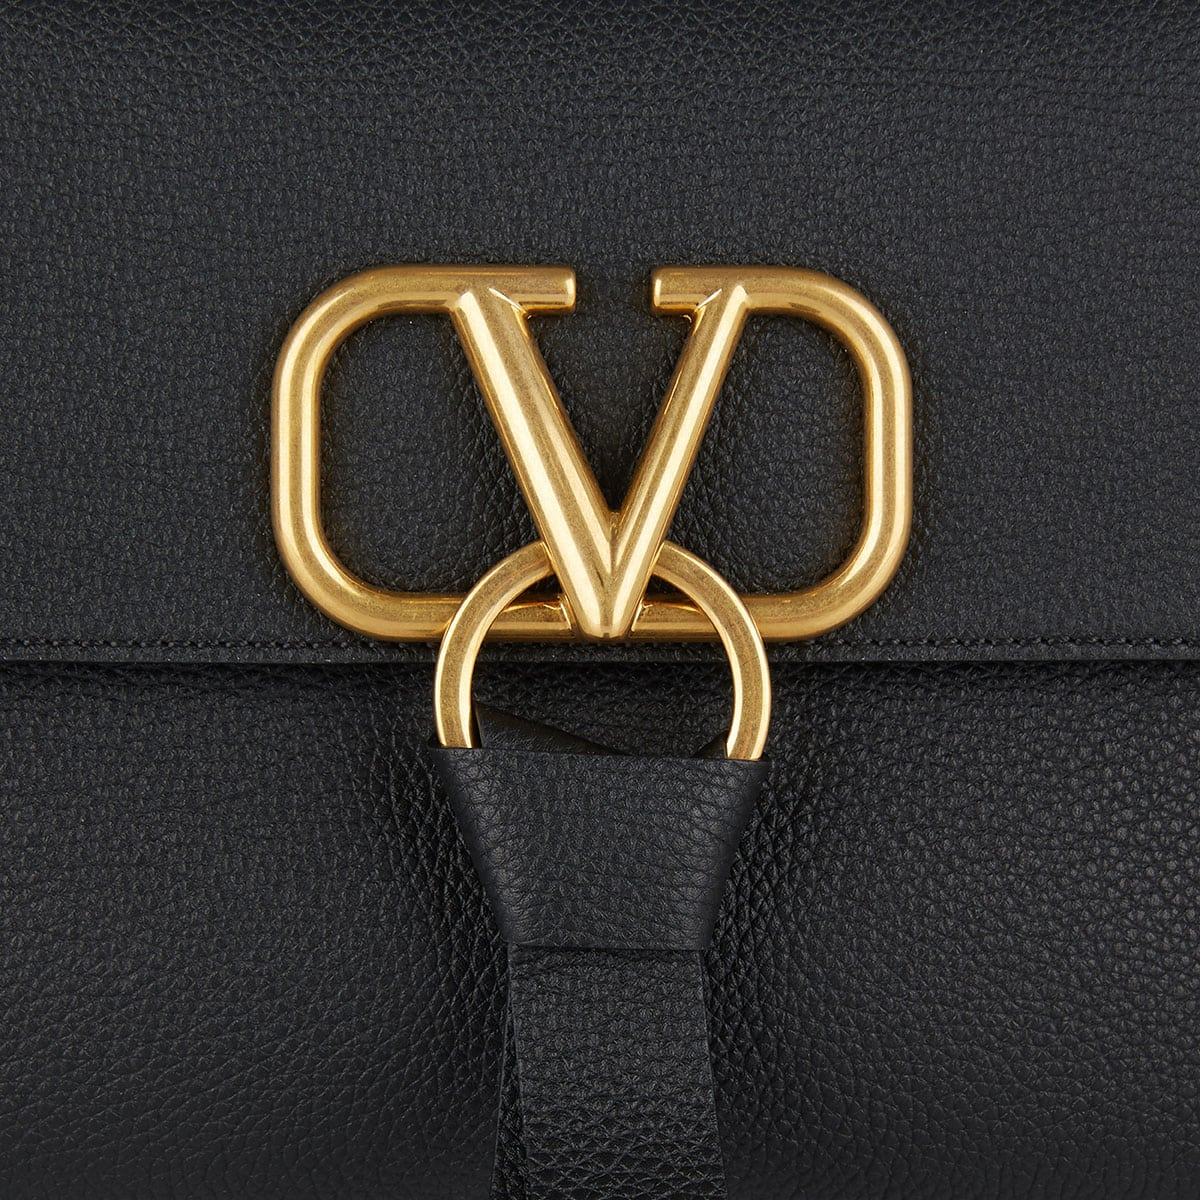 V-RING leather shoulder bag